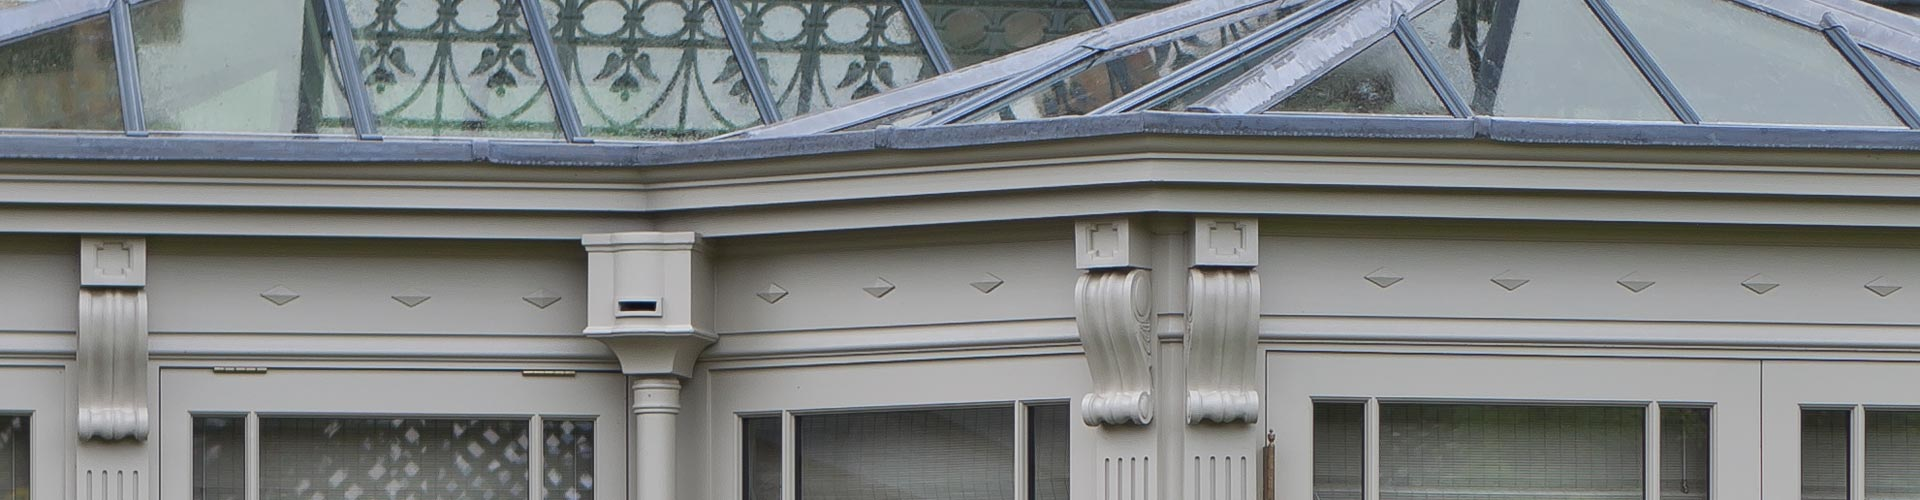 Close up of a bespoke conservatory showing design detail and proportions